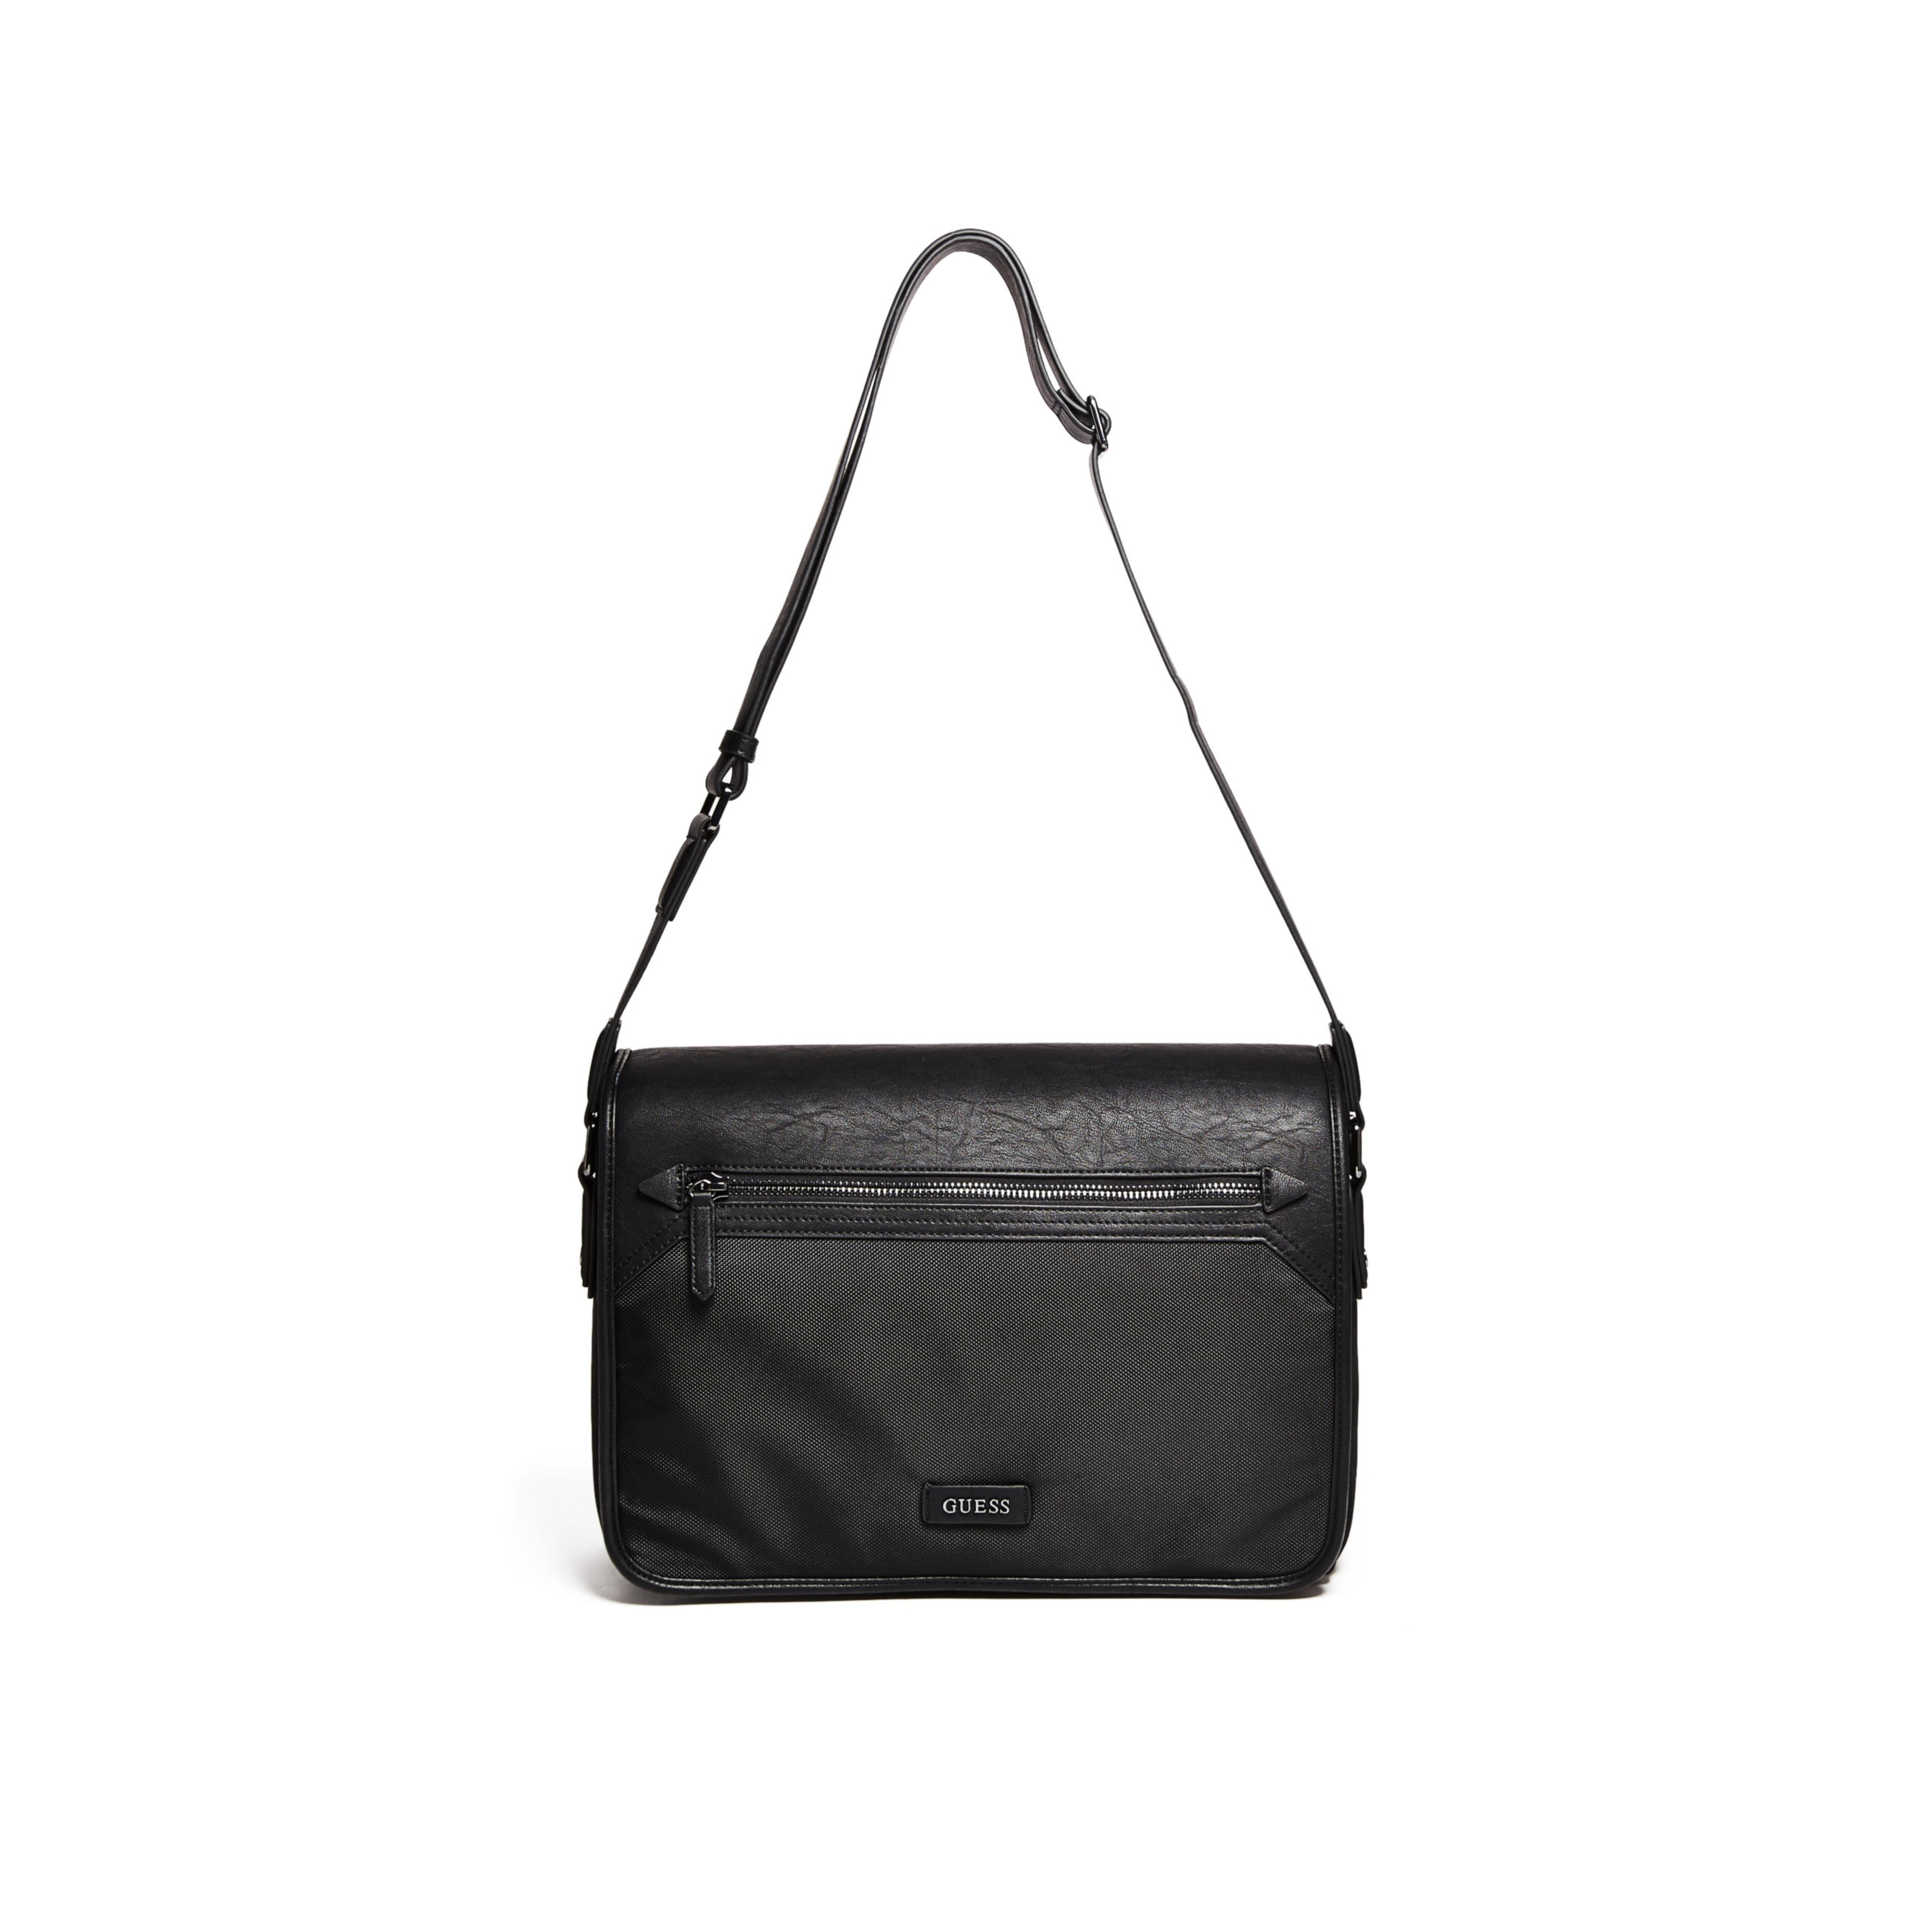 2da0e8415f82 Gallery. Previously sold at  GUESS · Women s Leather Messenger Bags